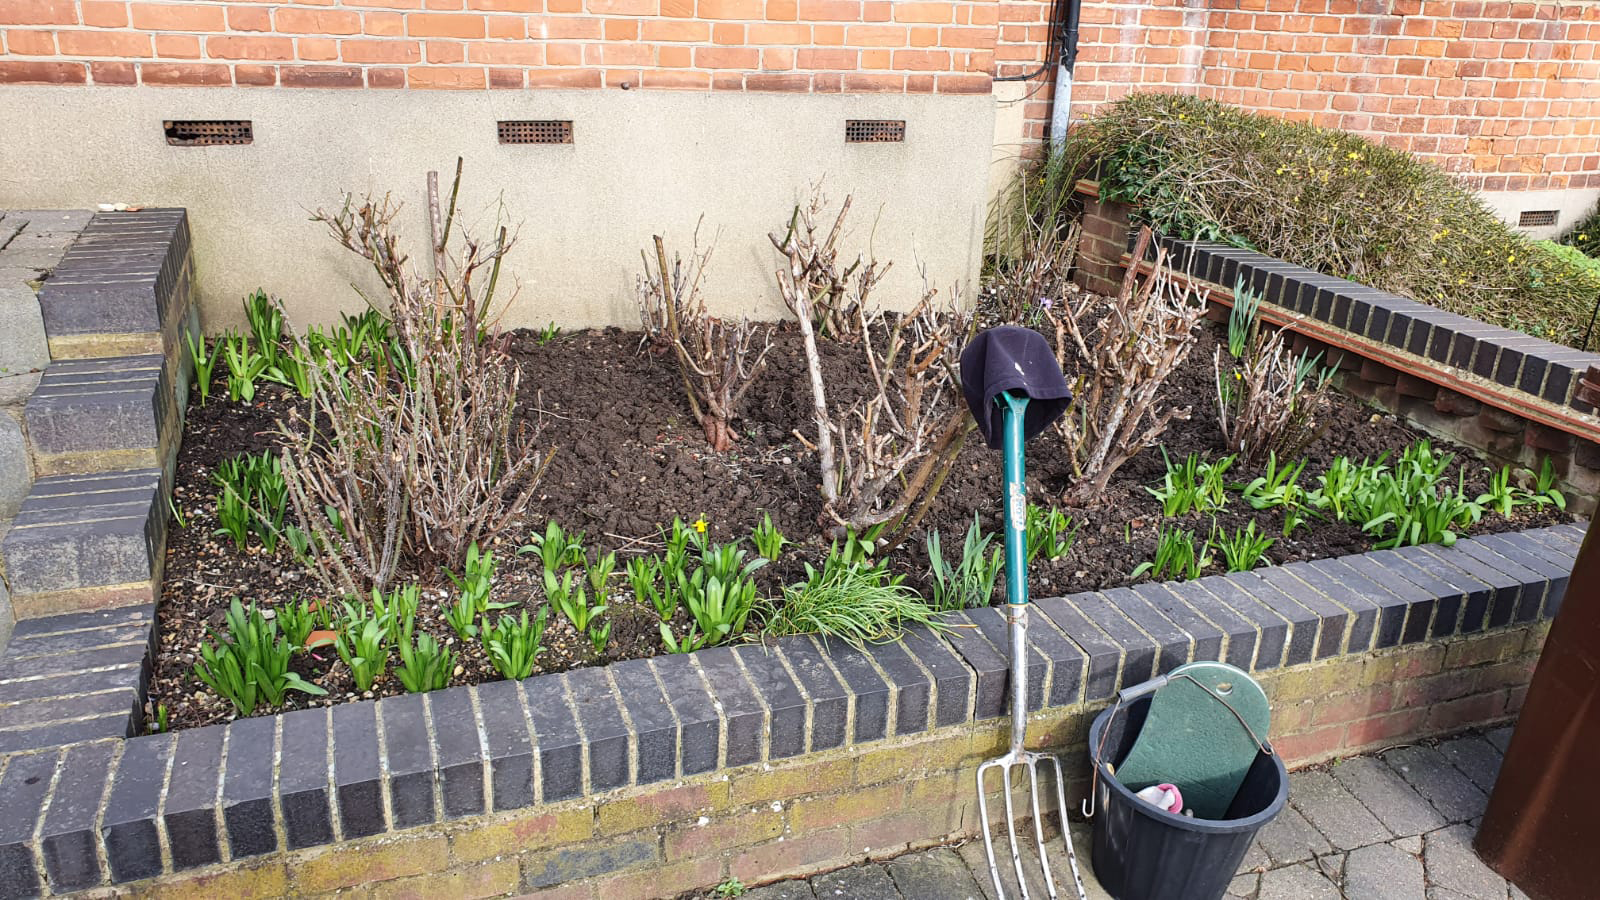 A  flower bed containing shrub roses and spring bulbs after being weeded, winter 2020